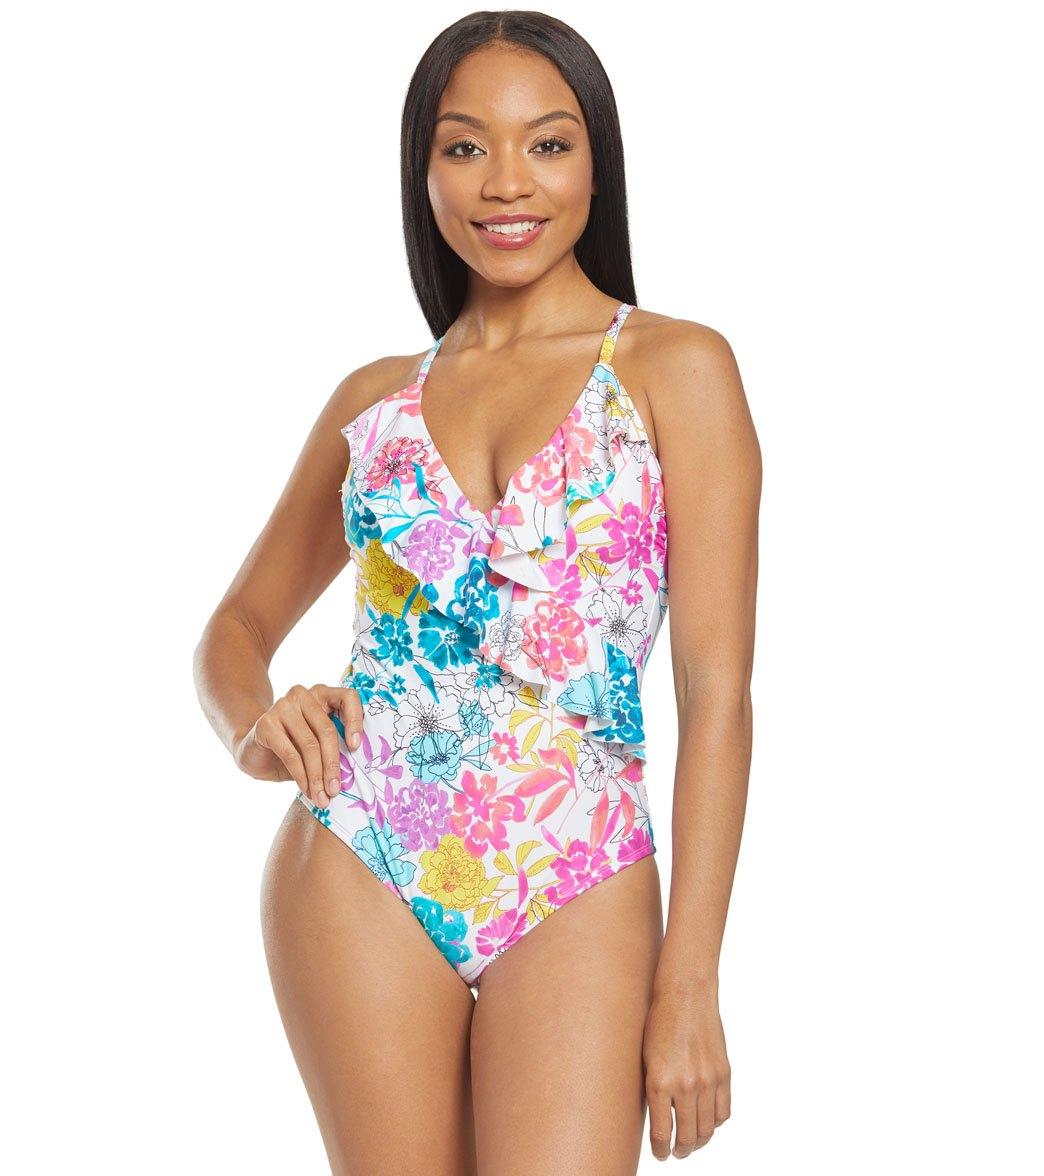 3c92d5f7069 Kenneth Cole Reaction Paint The Garden Ruffle One Piece Swimsuit at  SwimOutlet.com - Free Shipping